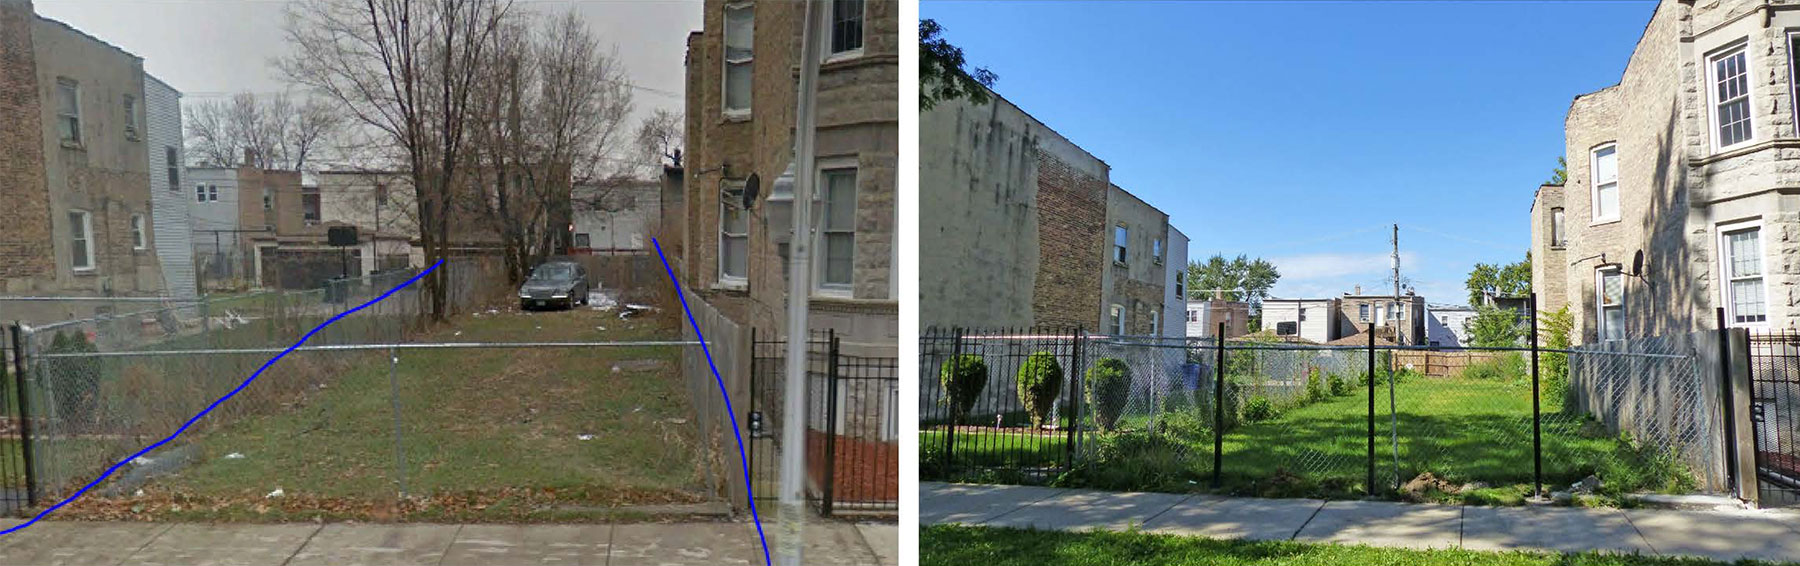 Before and after photos of a vacant lot in Englewood that benefited from the City of Chicago's Large Lots Program, 2017.